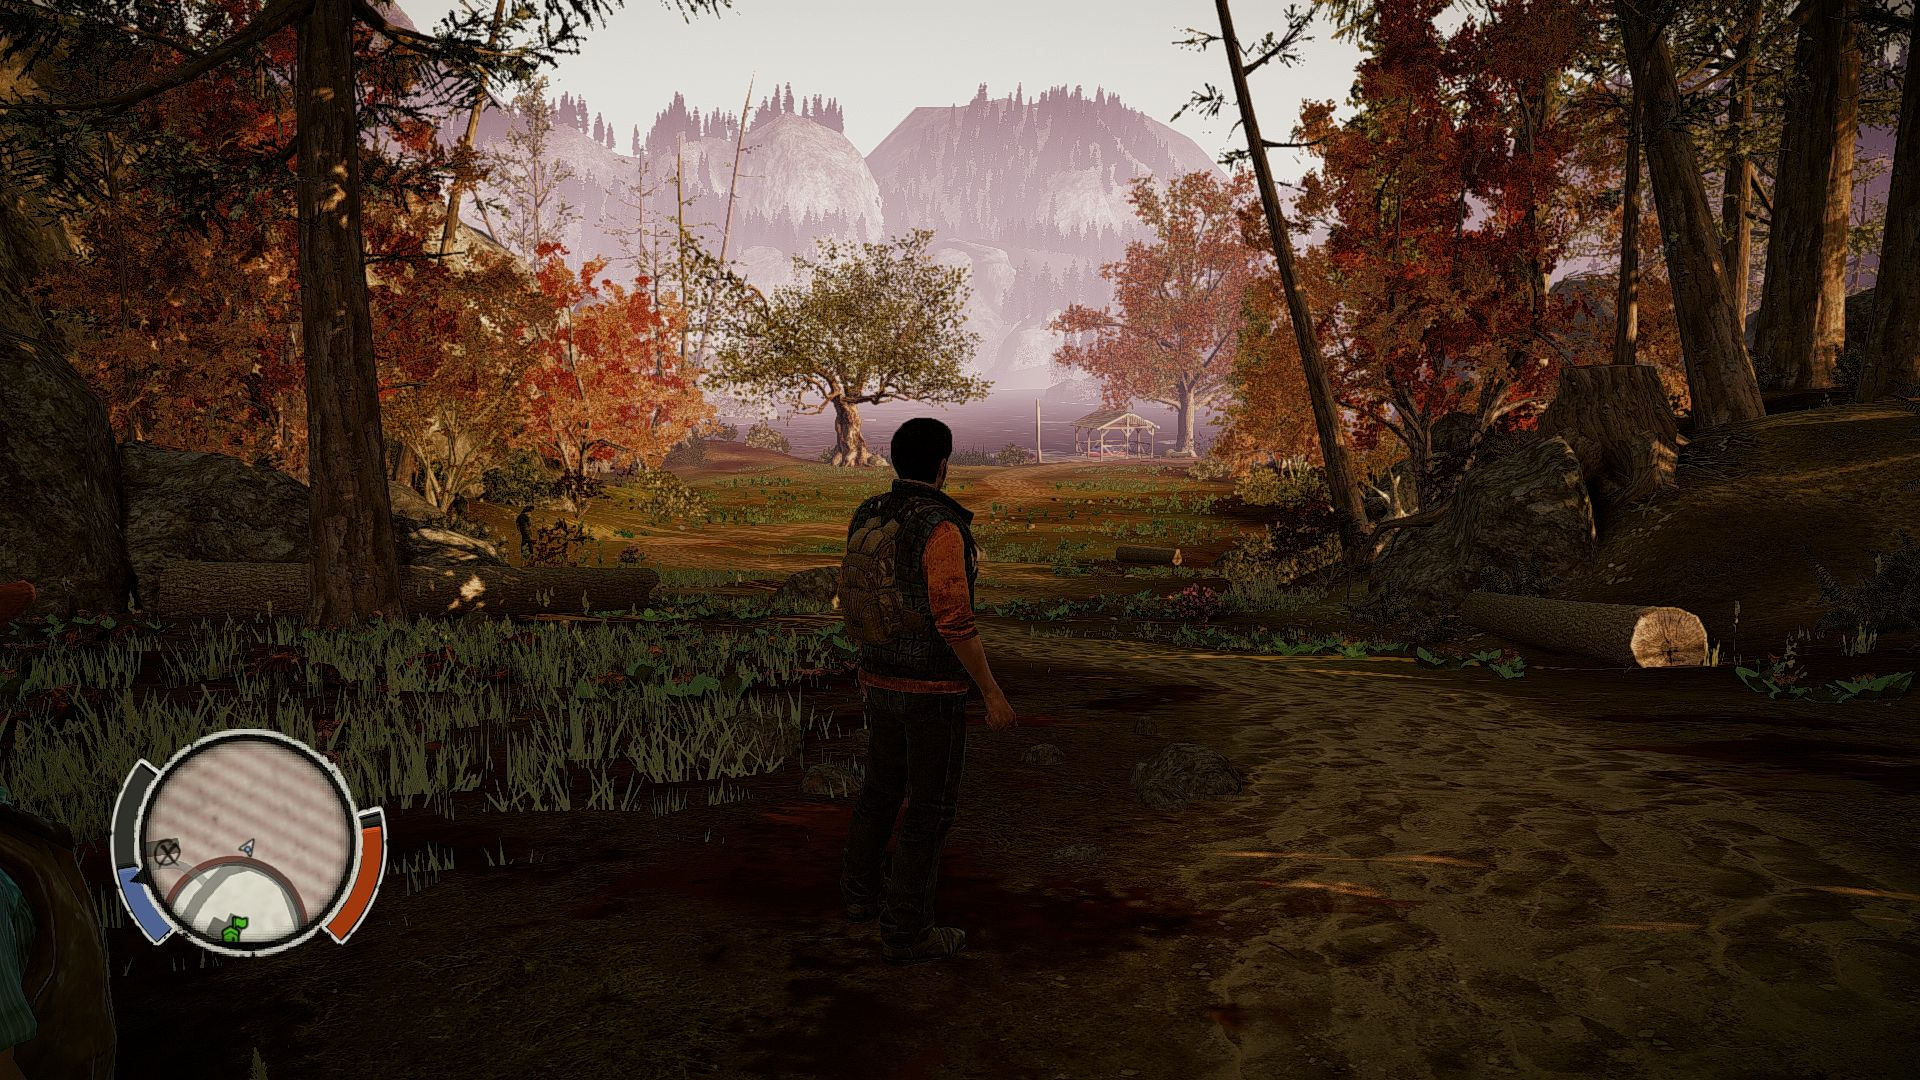 CD287D1BBC065AFD5A01AAE87BF43F669D42604E State Of Decay Map Details on dying light map, don't starve map, five nights at freddy's map, the evil within map, the banner saga map, lords of the fallen map, no man's sky map, sunset overdrive map, the elder scrolls v: skyrim map, dead island map, forza horizon 2 map, metal gear solid v: the phantom pain map, just cause 3 map, state decay breakdown, batman: arkham knight map, bound by flame map, dayz map, dragon age: inquisition map, until dawn map, l.a. noire map,